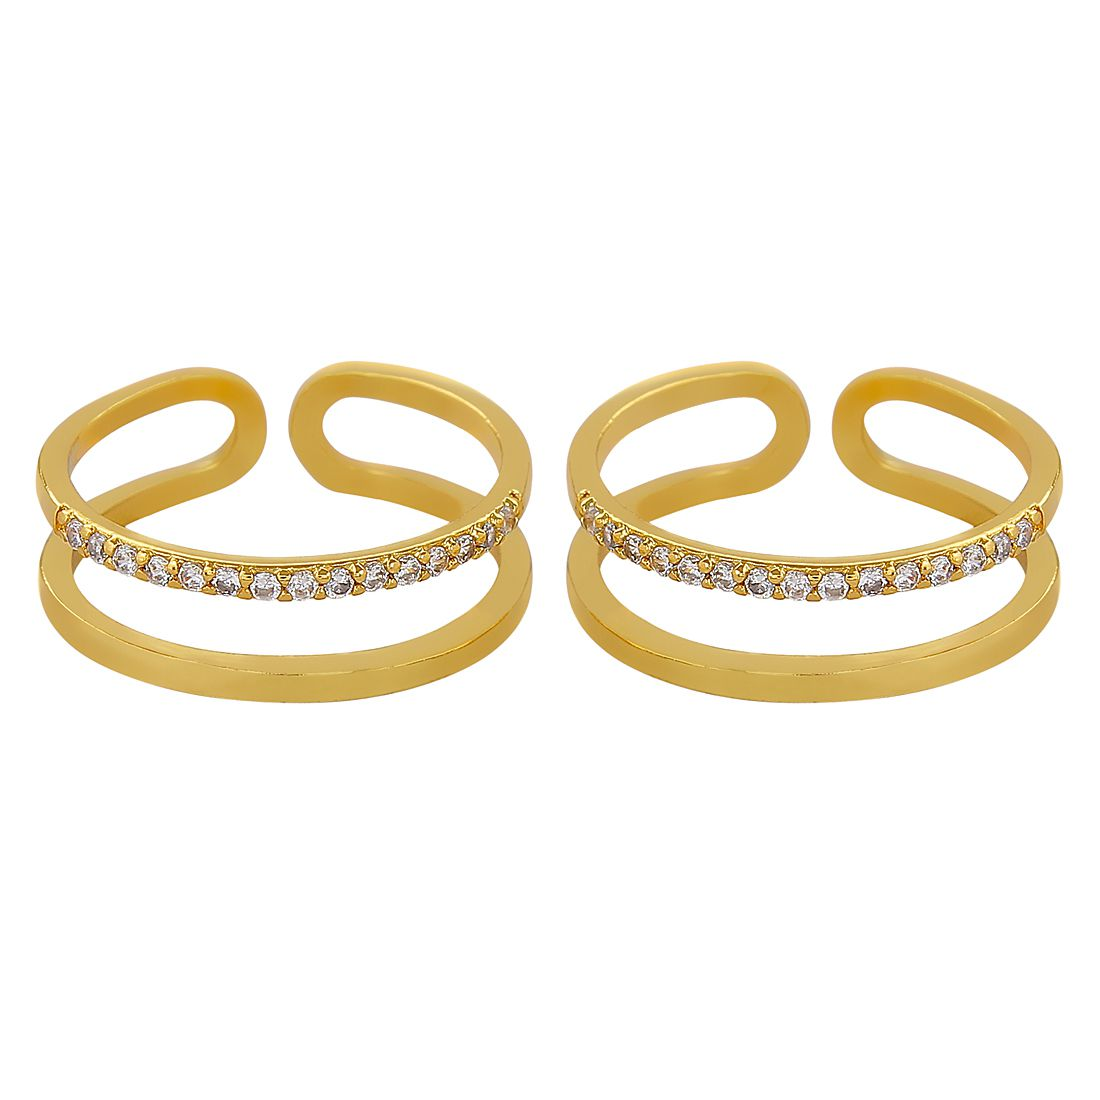 MUCH MORE Fabulous Gold Plated Toe Ring with Crsstal Stone